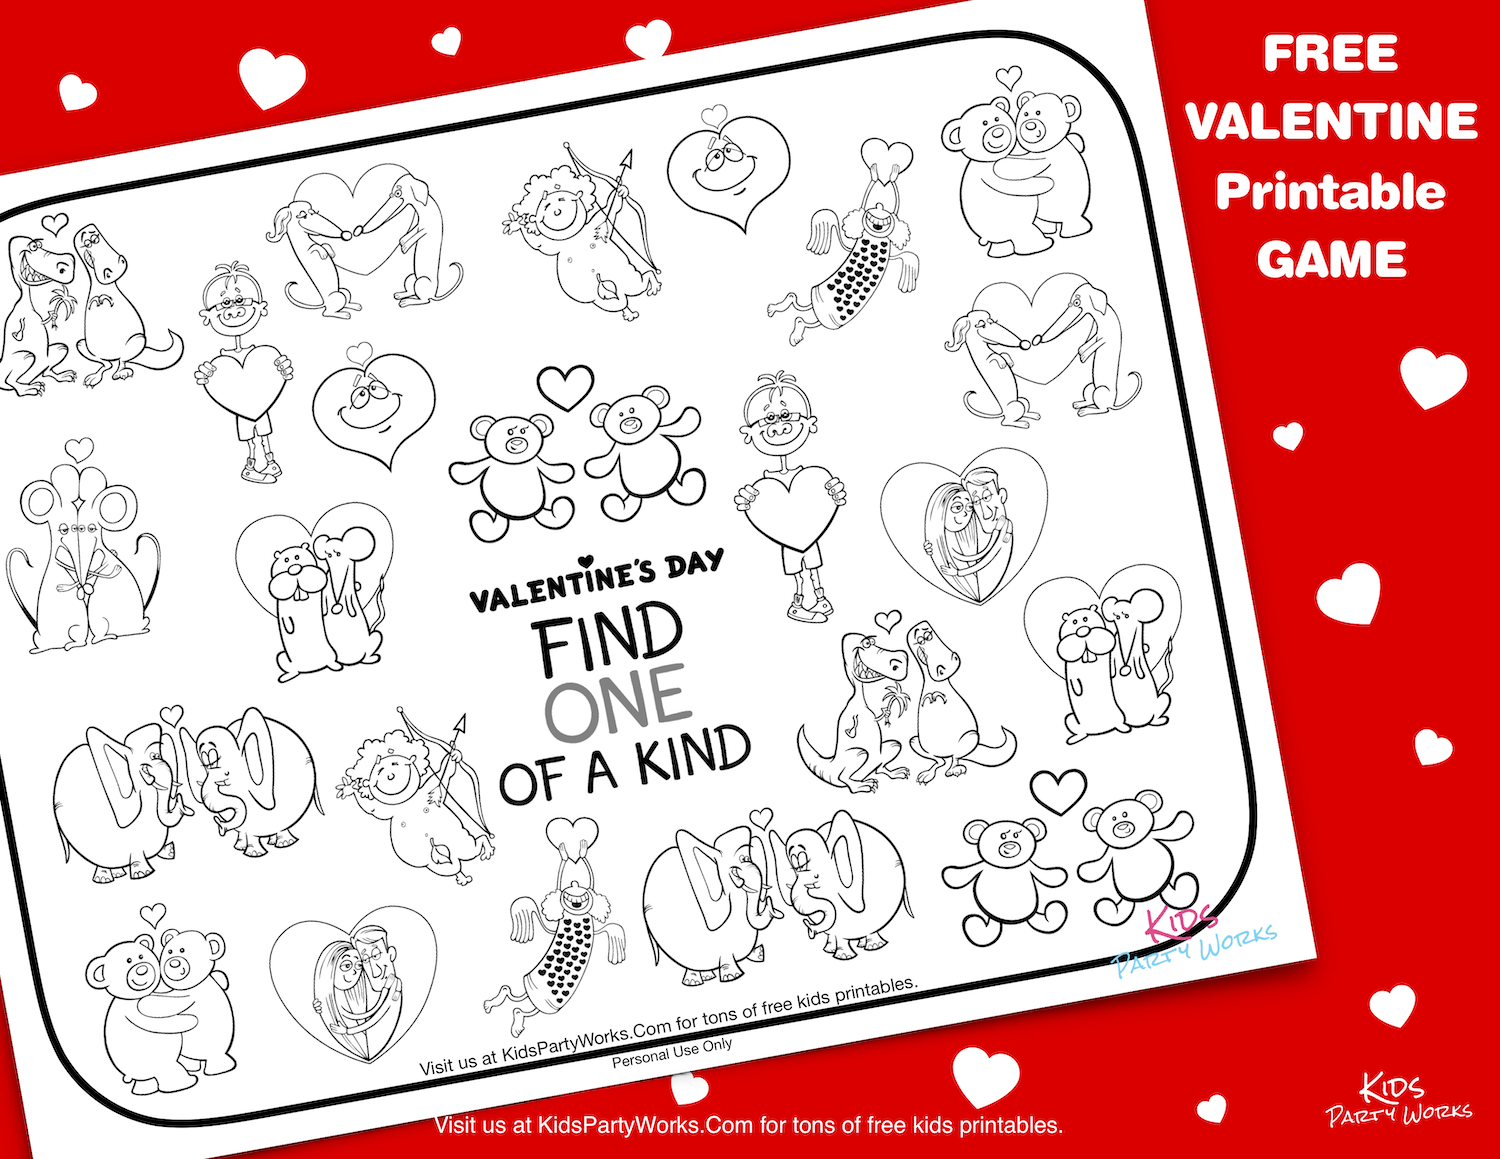 Free Valentine Printable Game. KidsPartyWorks.Com